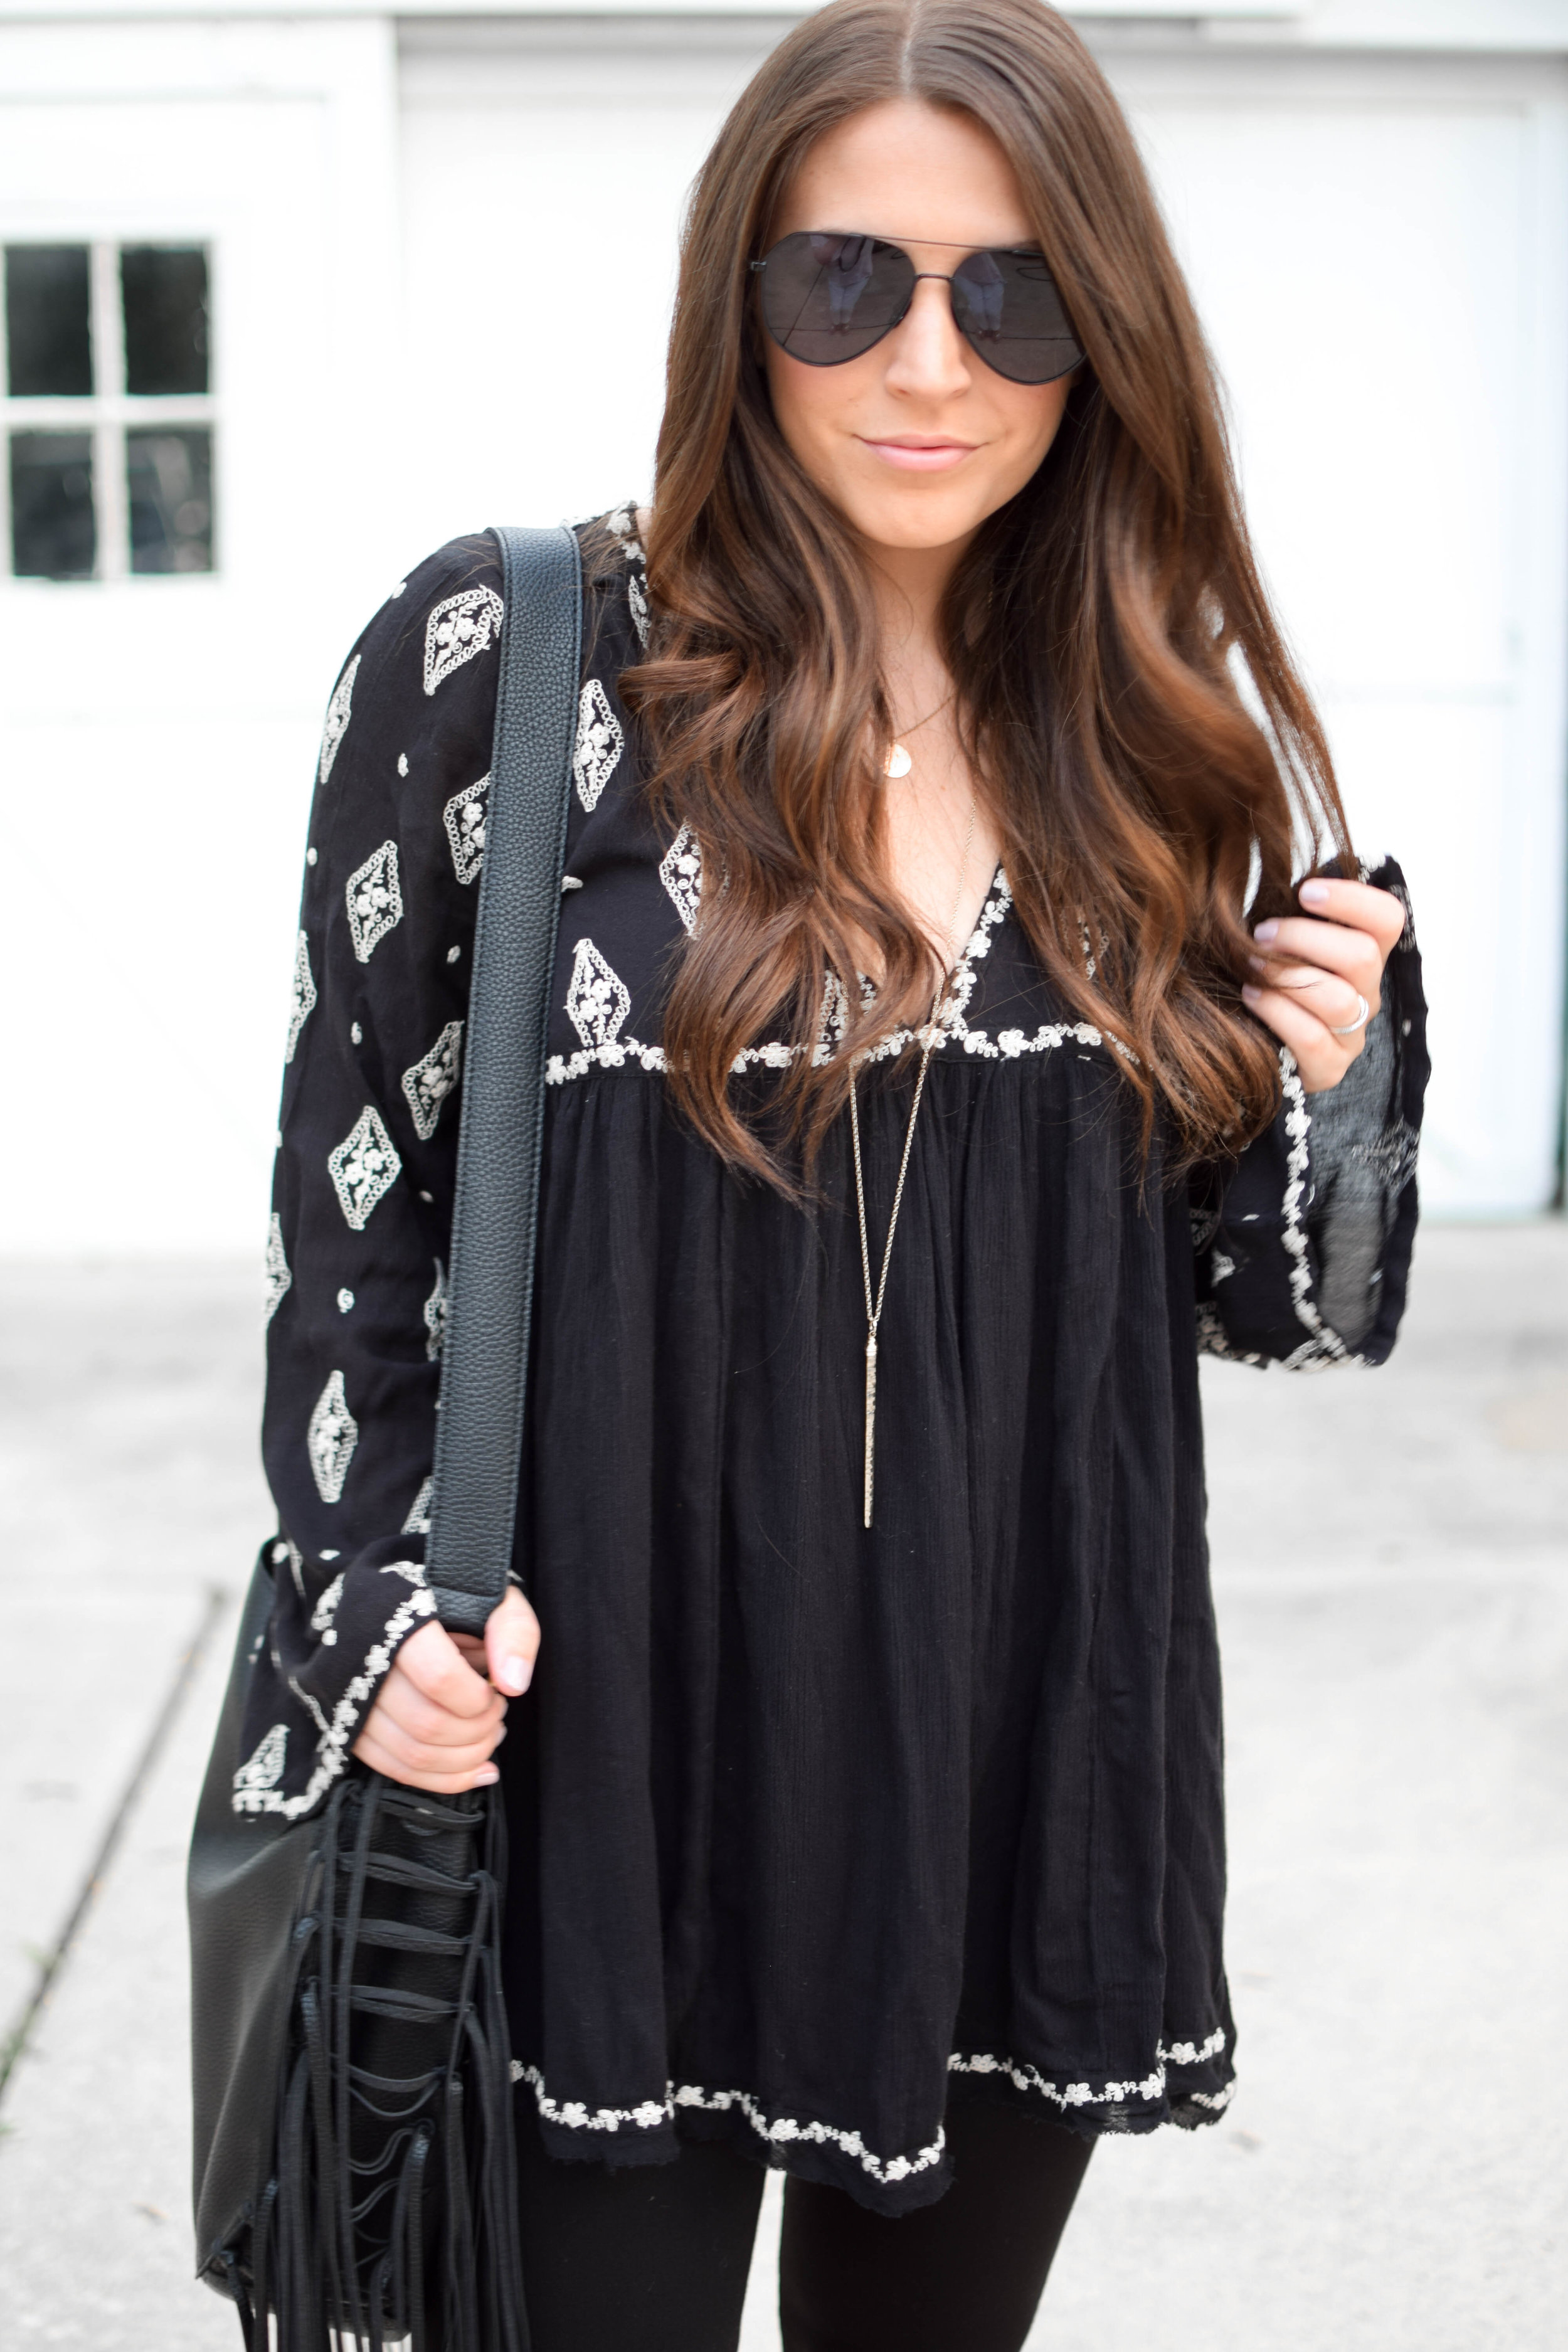 fall fashion / fall outfit idea / fall outfit inspiration / all black fall outfit / free people boho top / madewell black denim / diff eyewear